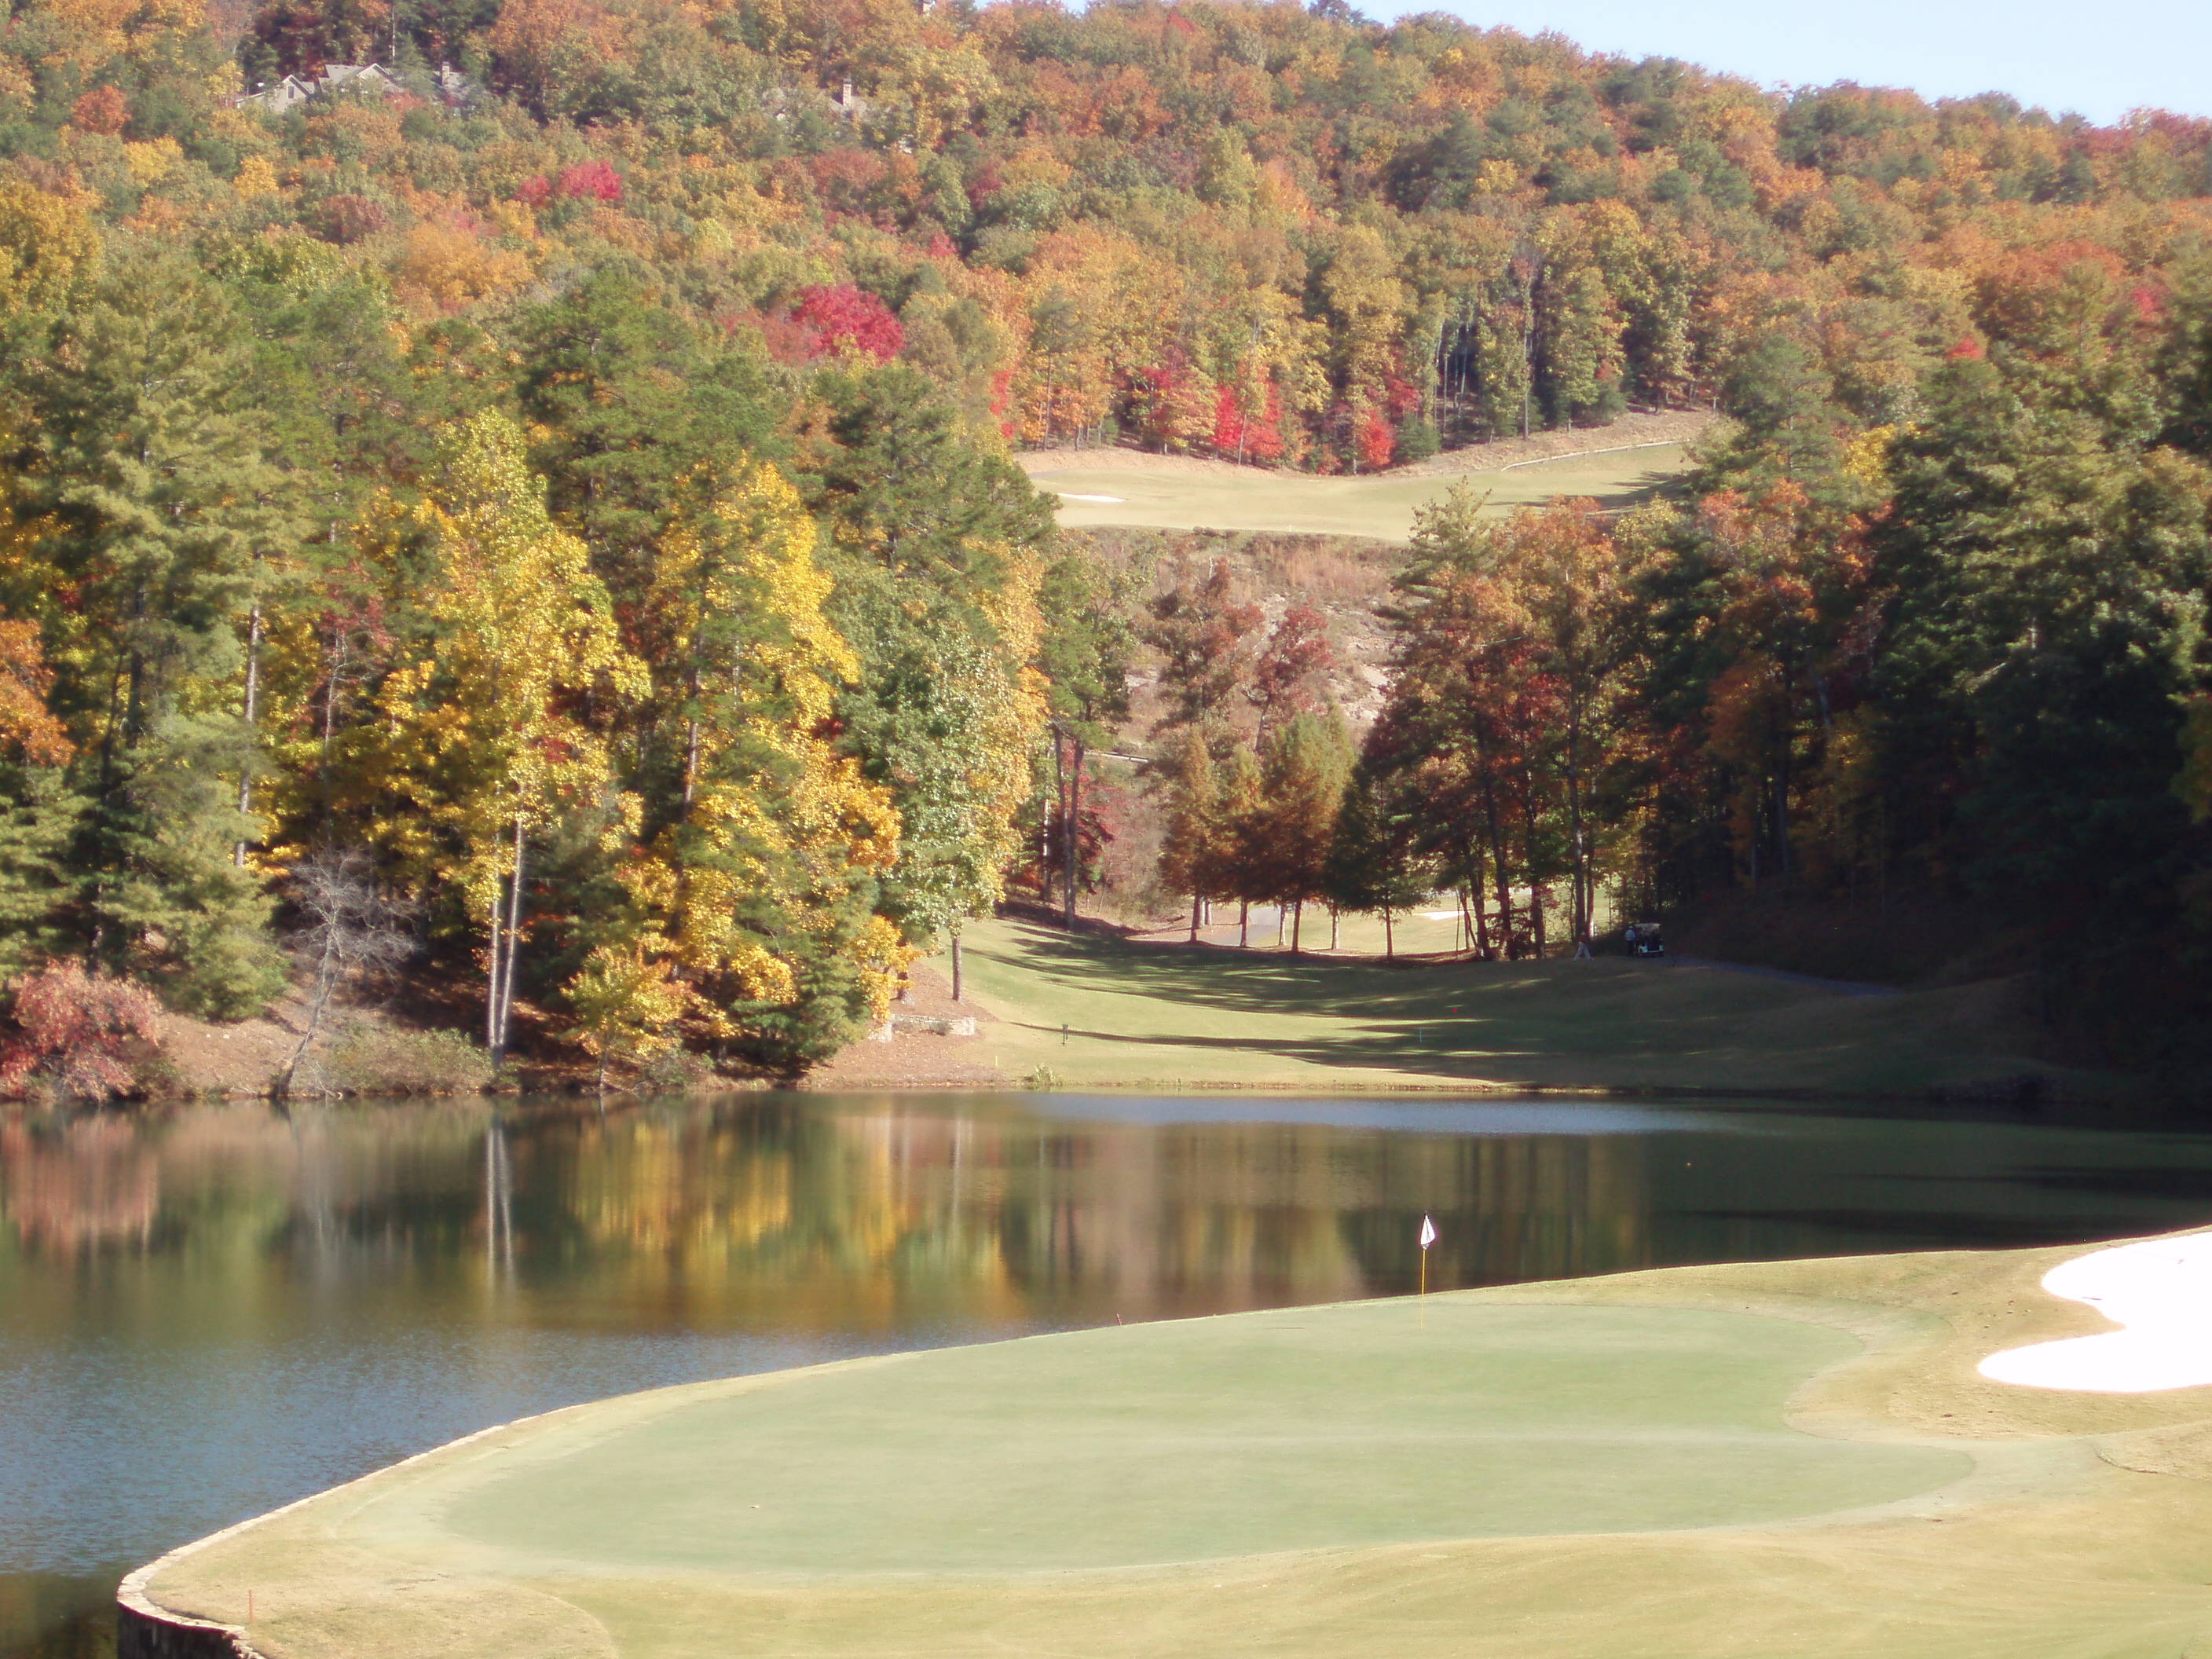 Big canoe may be the golf community for you for The big canoe